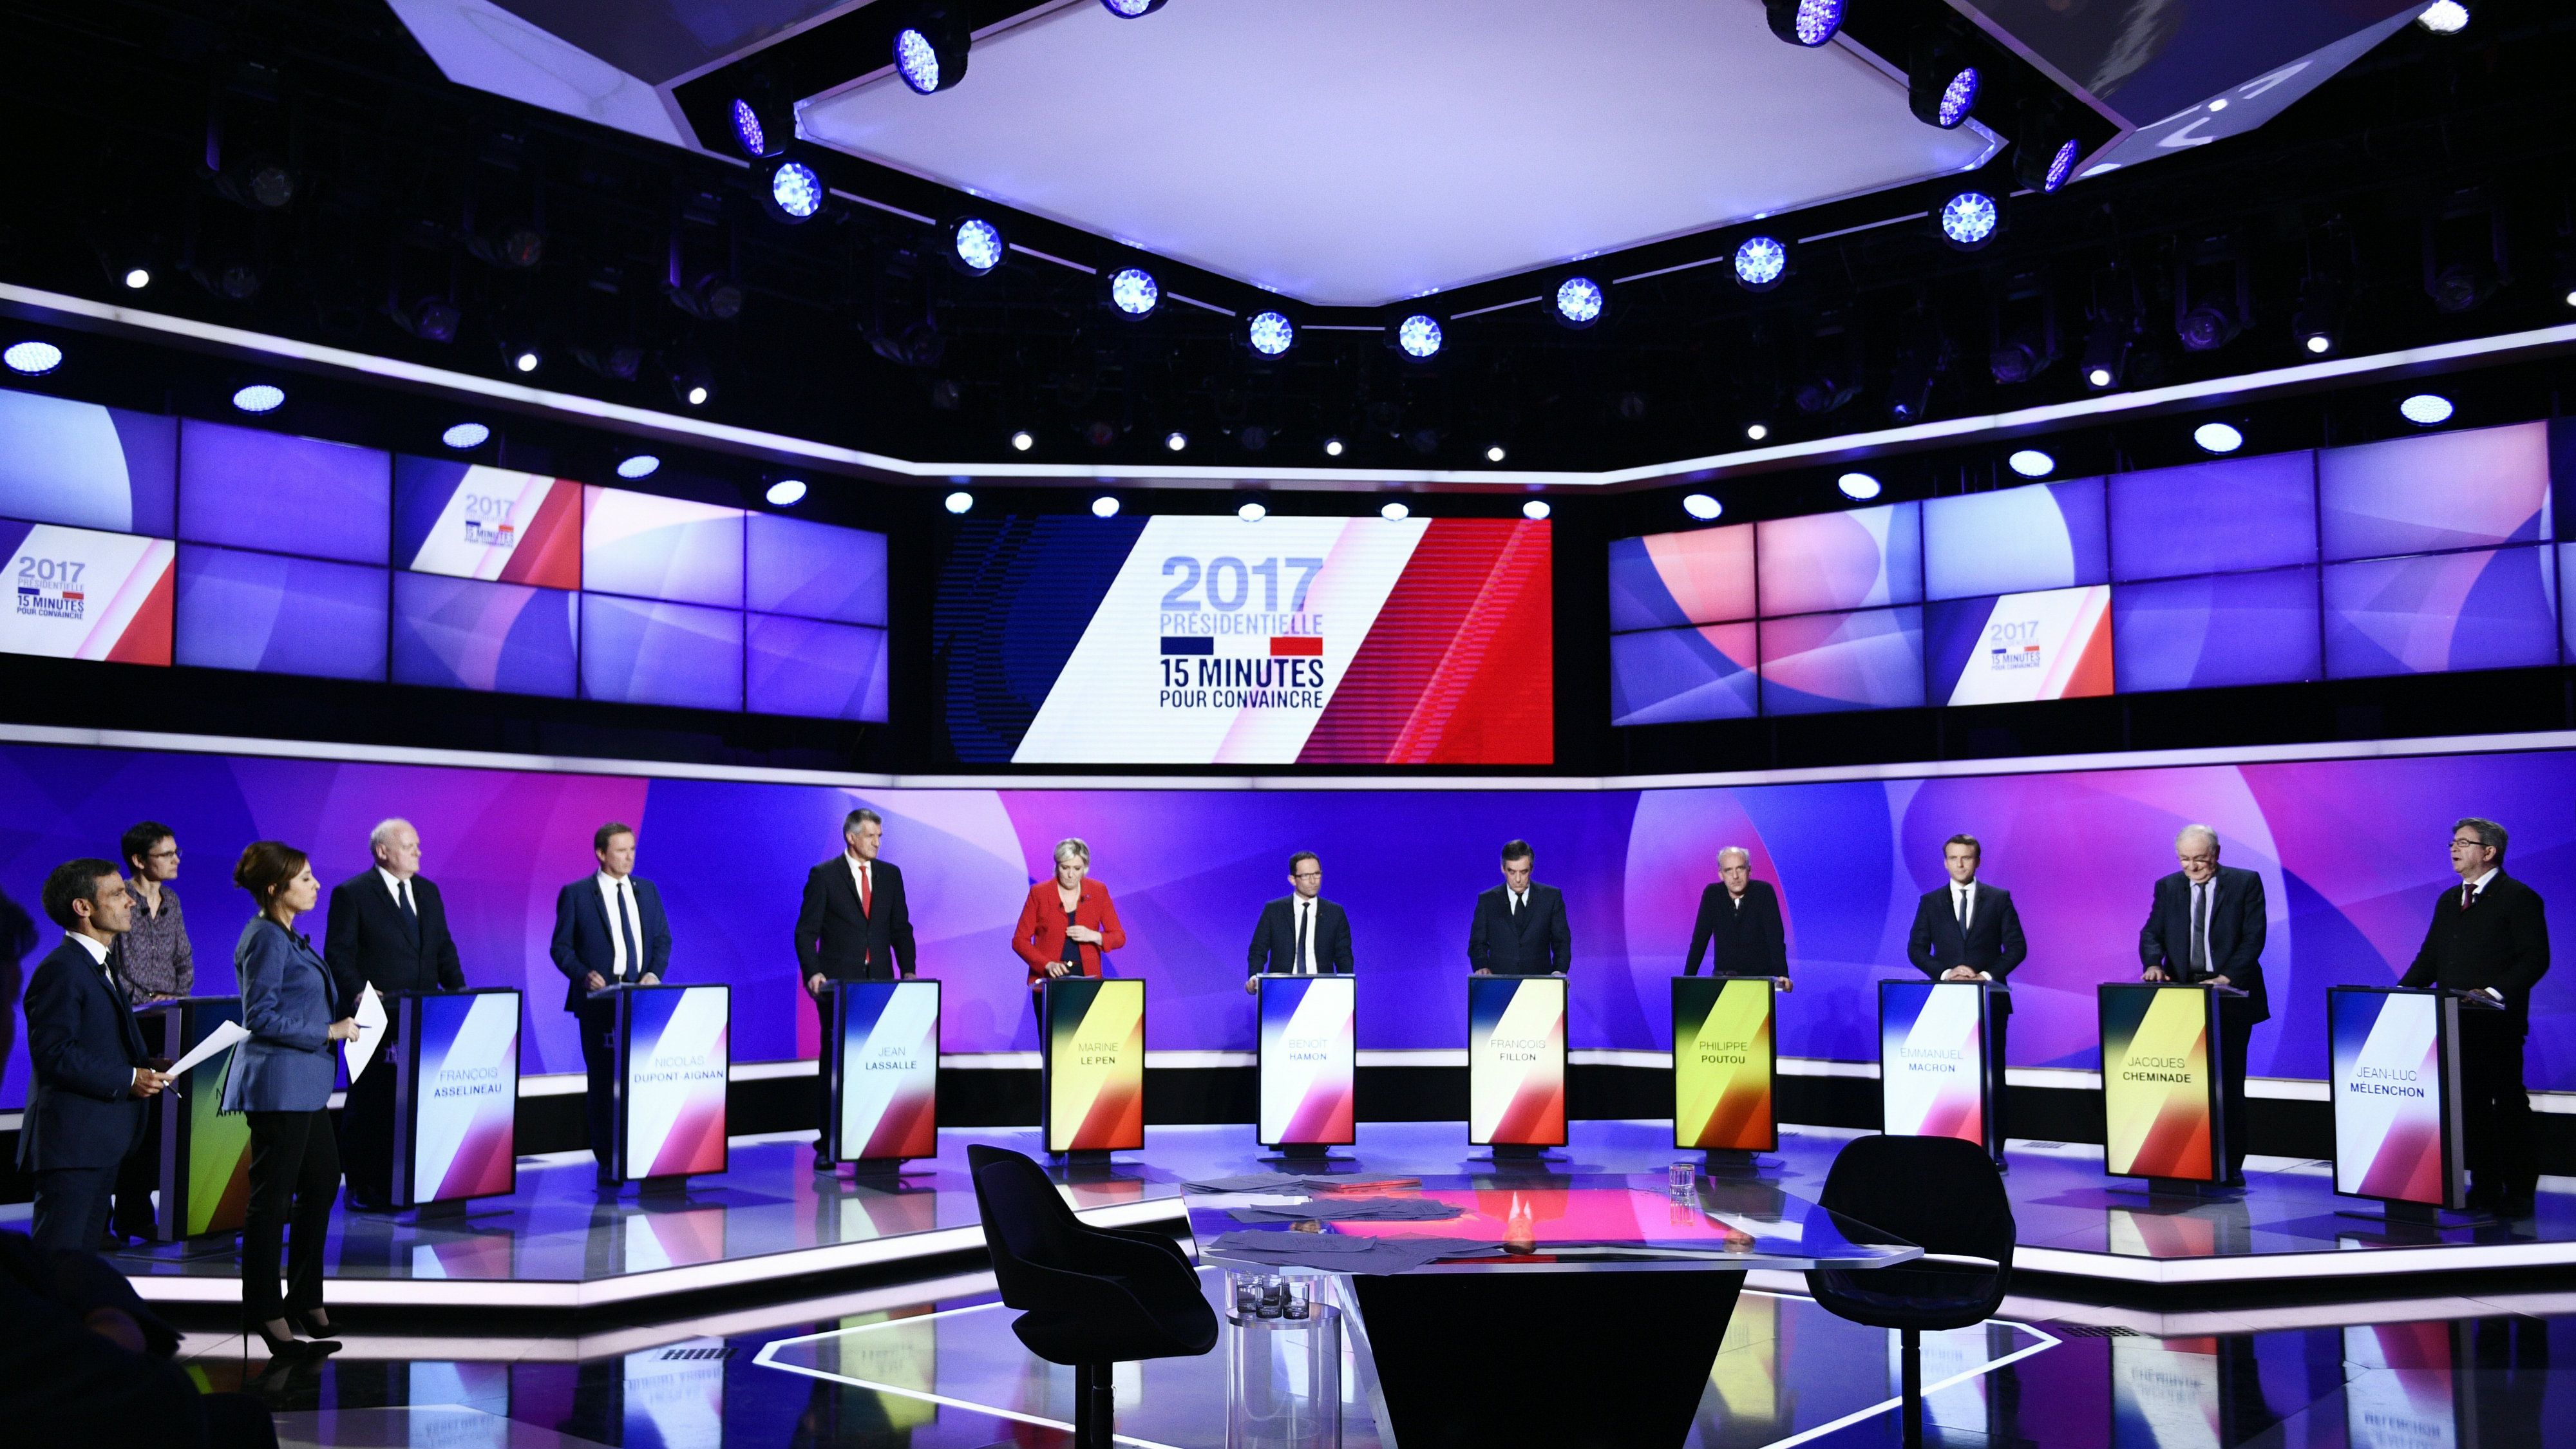 """The eleven French presidential election candidates take part in a special political television show entitled """"15min to Convince"""" at the studios of French Television channel France 2 in Saint-Cloud, near Paris, April 20, 2017. REUTERS/Martin Bureau/Pool"""